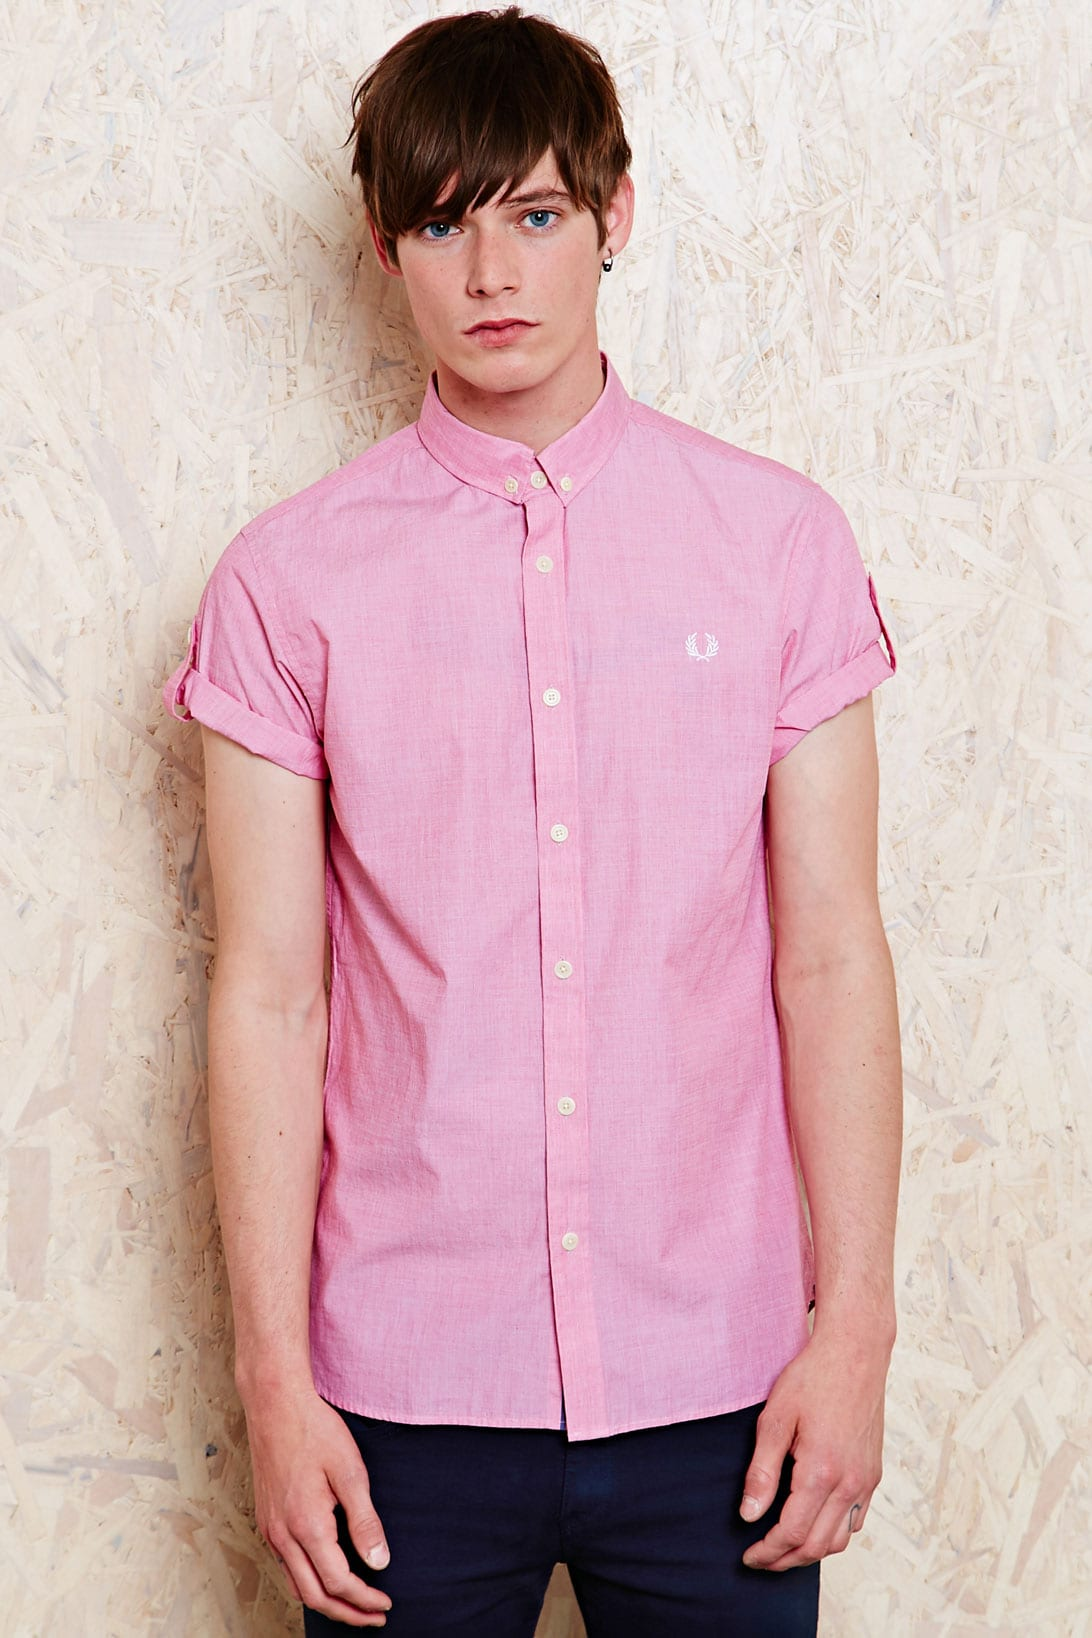 Camisa rosa de Urban Outfitters